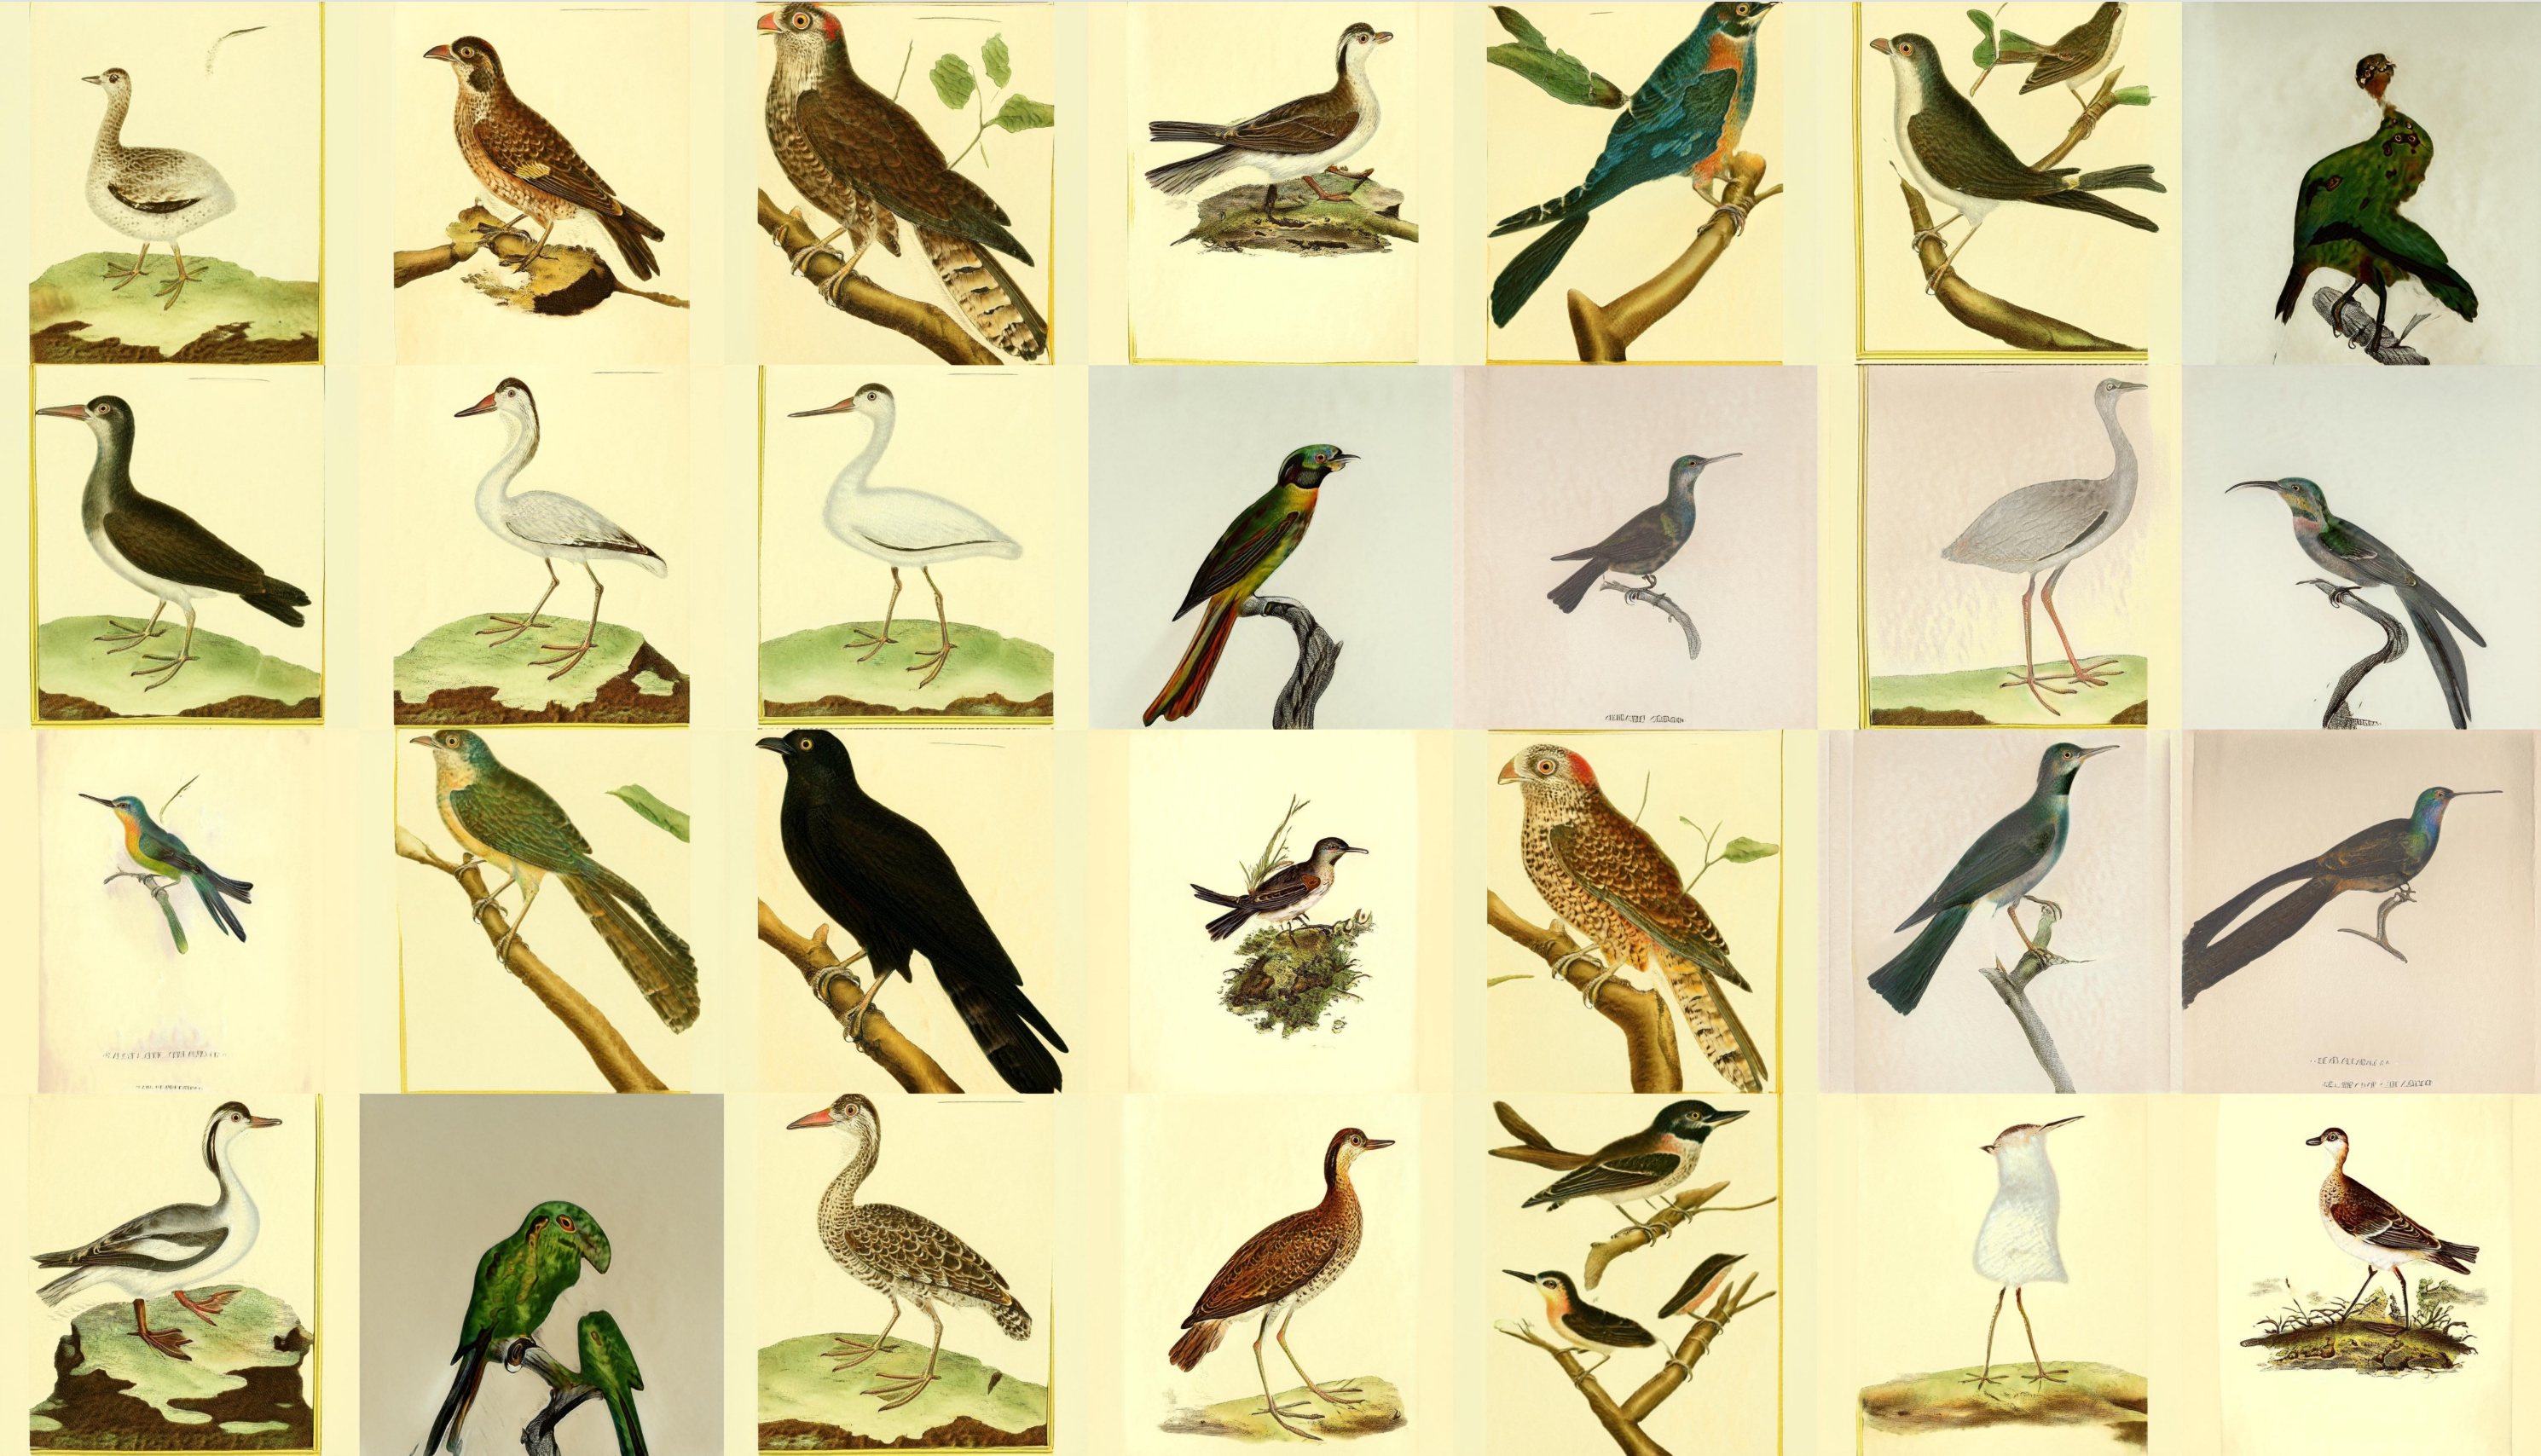 The contact sheet of images. Here if you don't look closely you think it's just a collection of real illustrations of birds. Most of them look like birds and we now have details like legs and eyes. In some cases a bird is a bit warped like it's melting, and in other cases a bird might have three legs or eyes. But for the most part it looks like real bird illustrations.